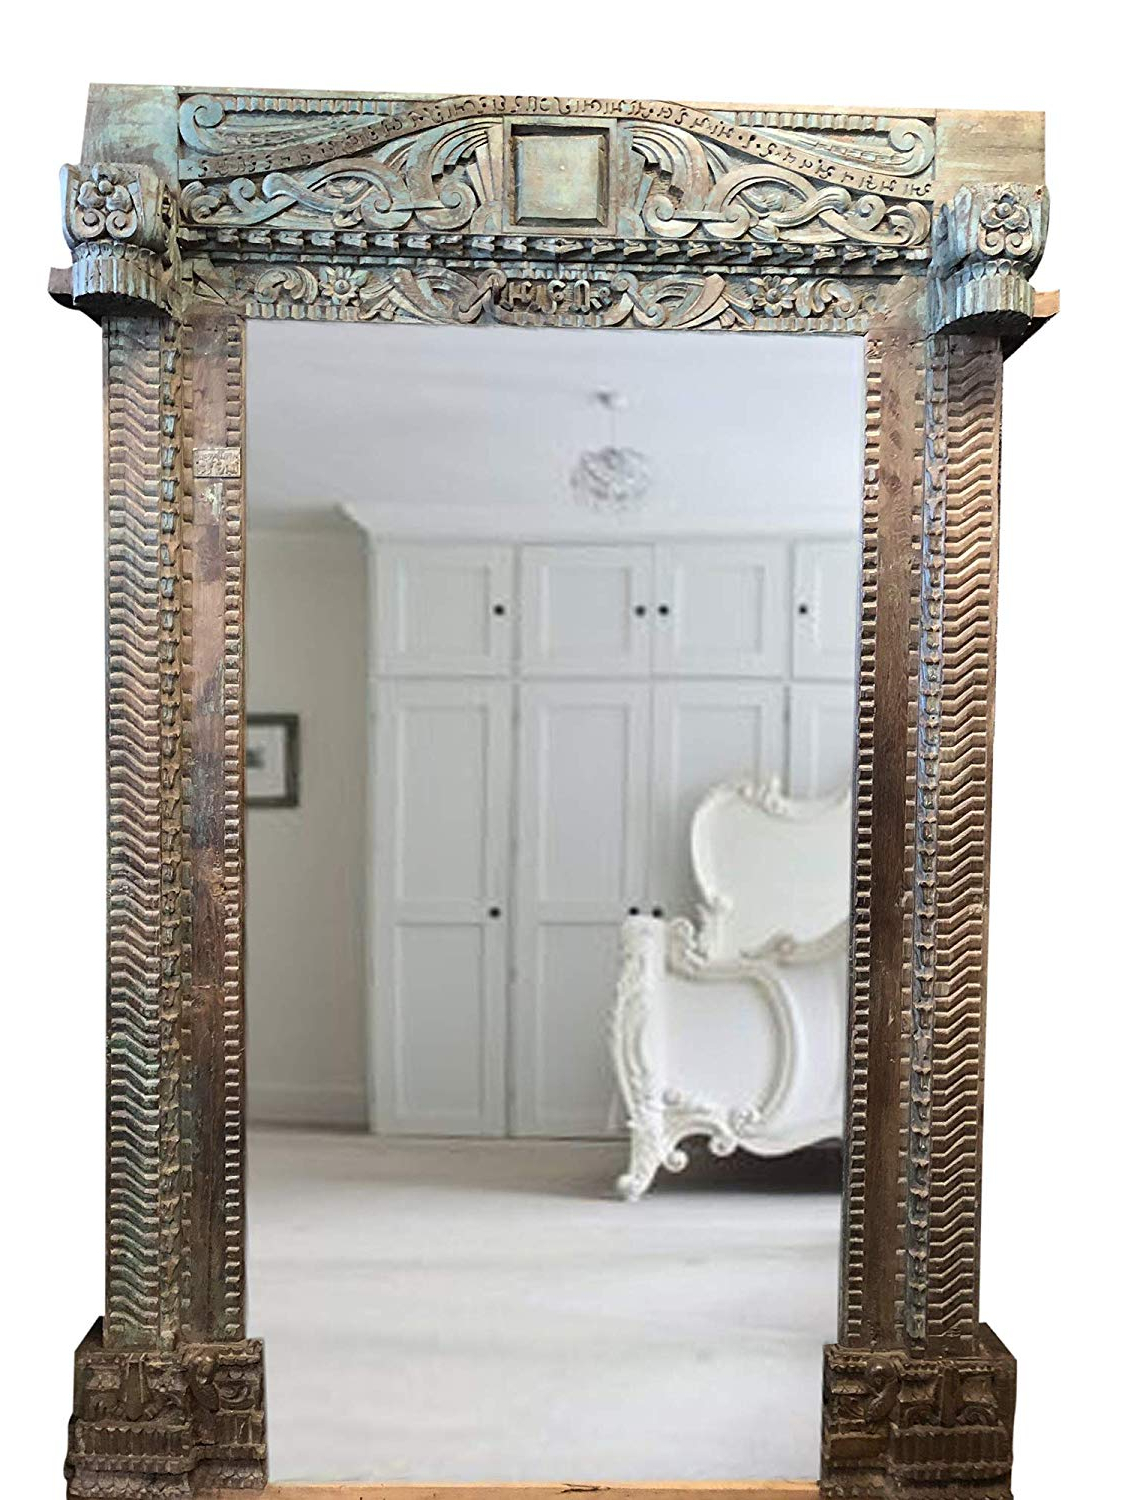 Amazon: Mogul Interior Huge Antique Floor Mirror, Wall Mirror Intended For Latest Beautiful Wall Mirrors (View 4 of 20)